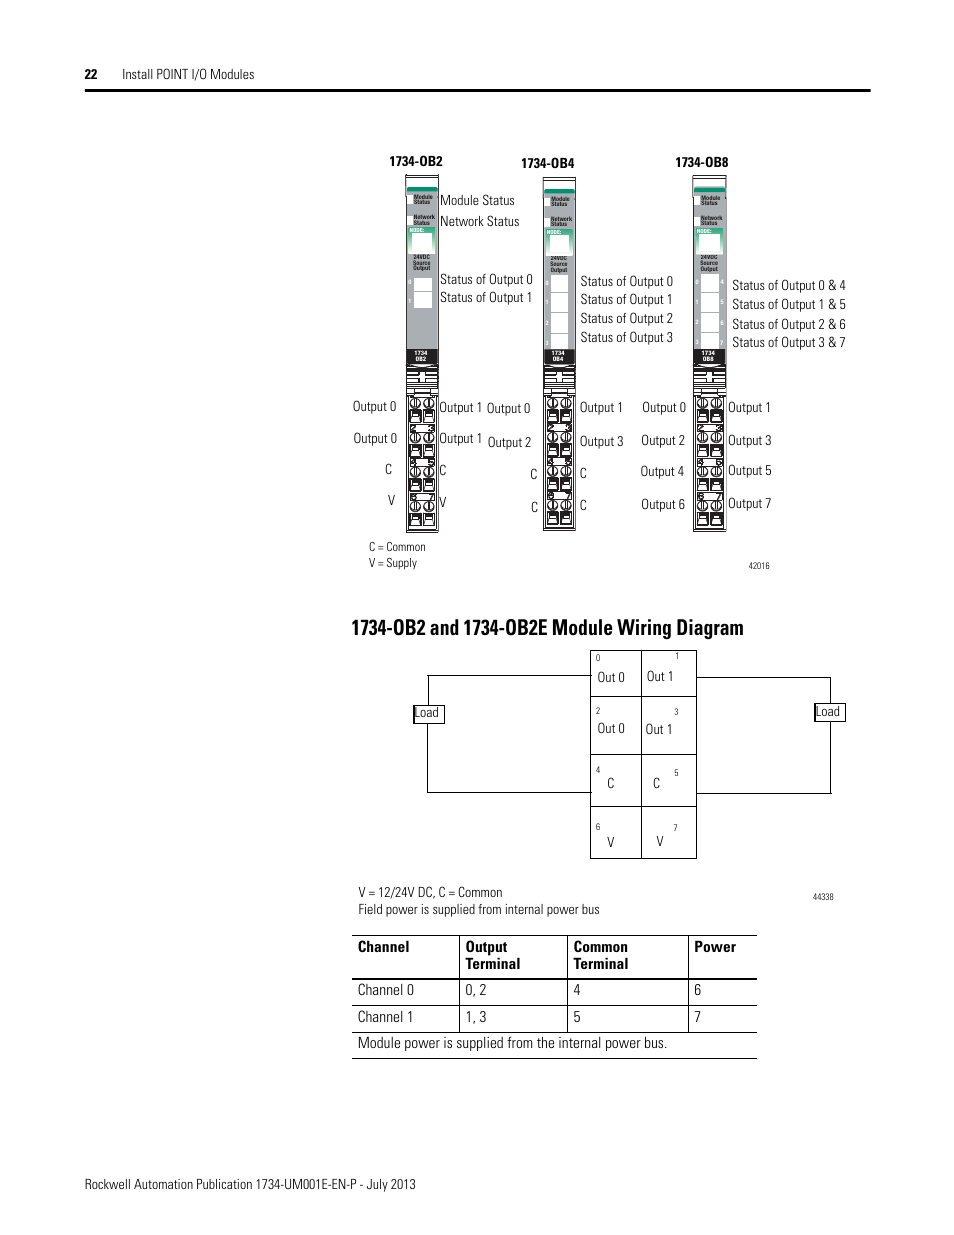 1734-ob2 and 1734-ob2e module wiring diagram | Rockwell Automation ...